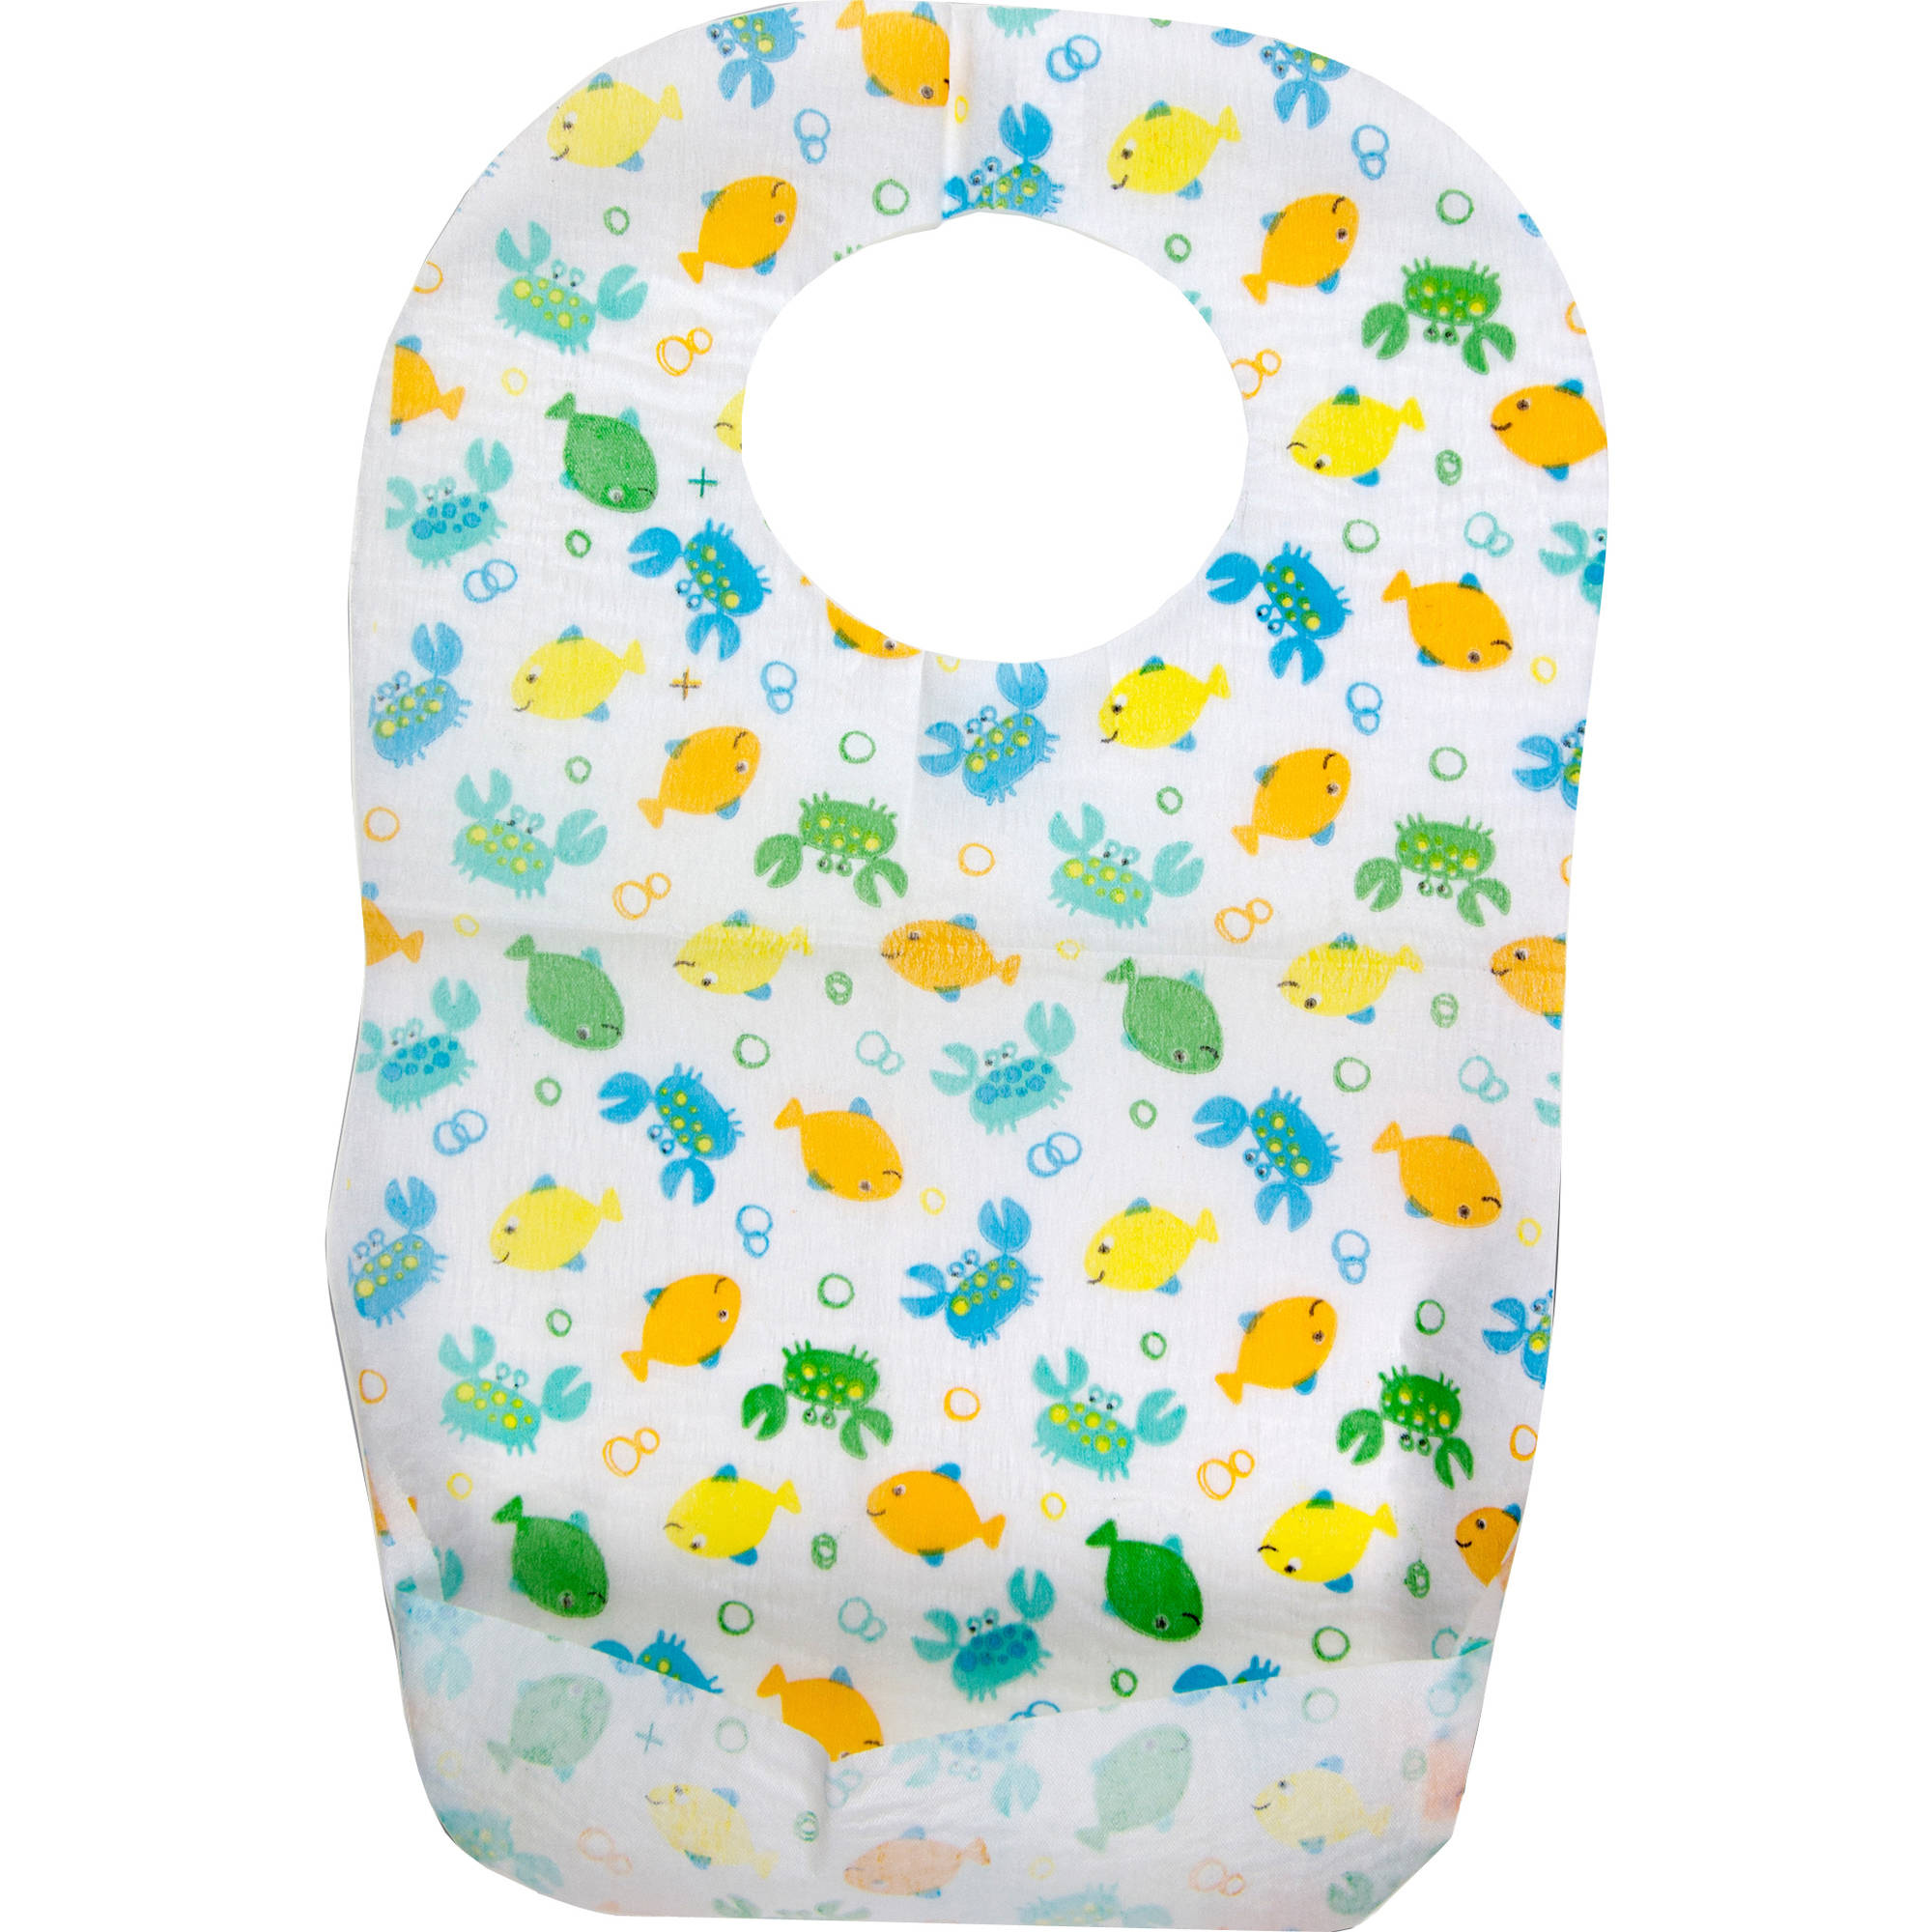 Summer Infant Keep Me Clean Disposable Bib